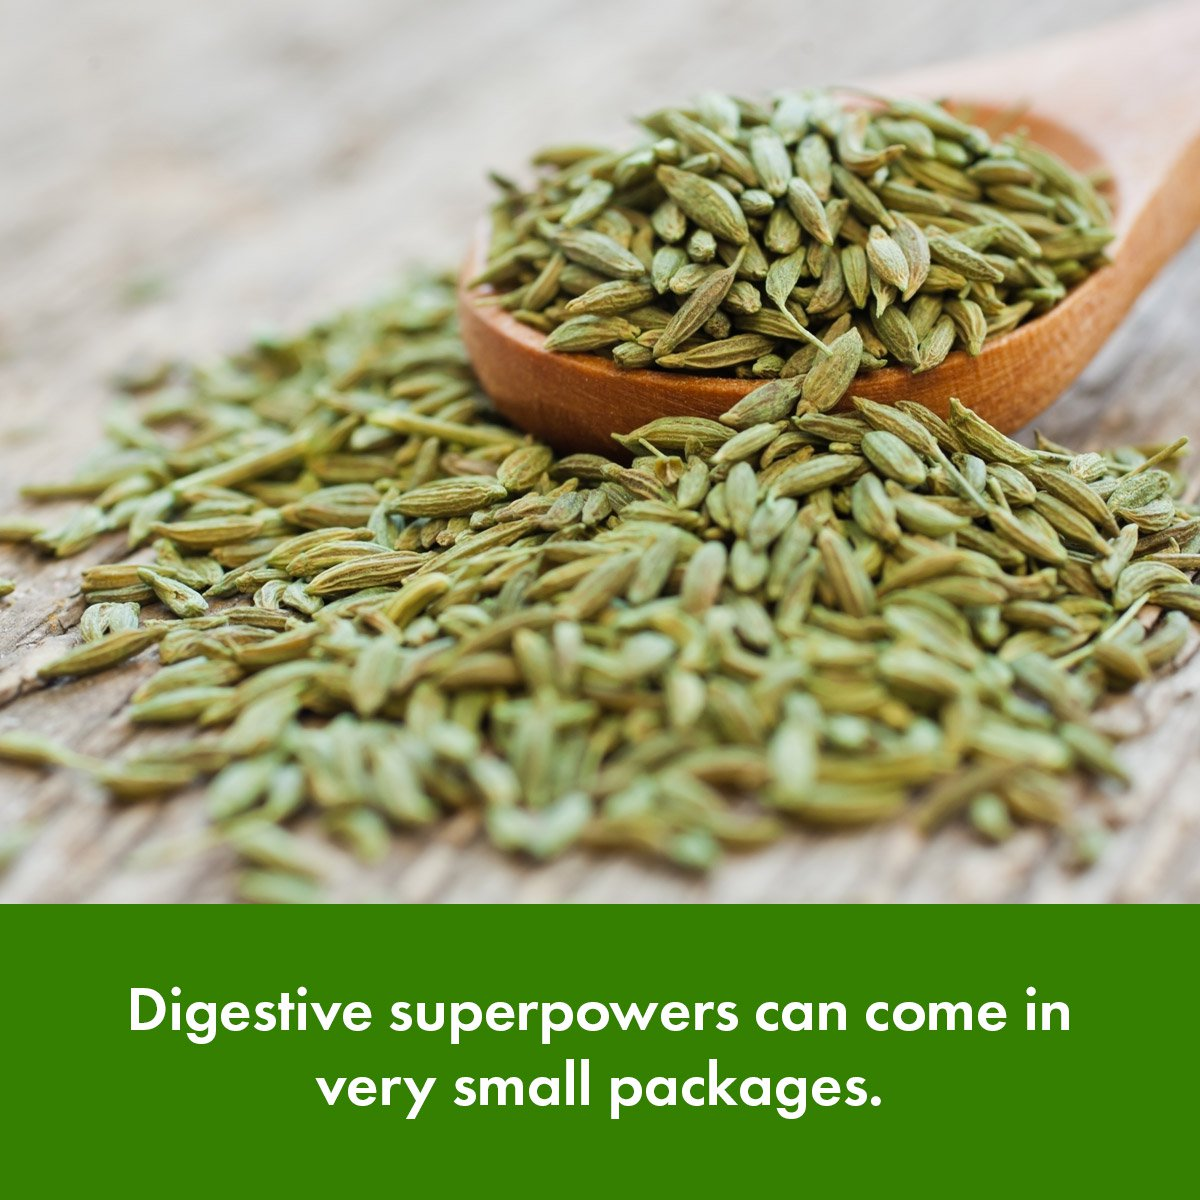 Digestive superpowers can come in very small packages.